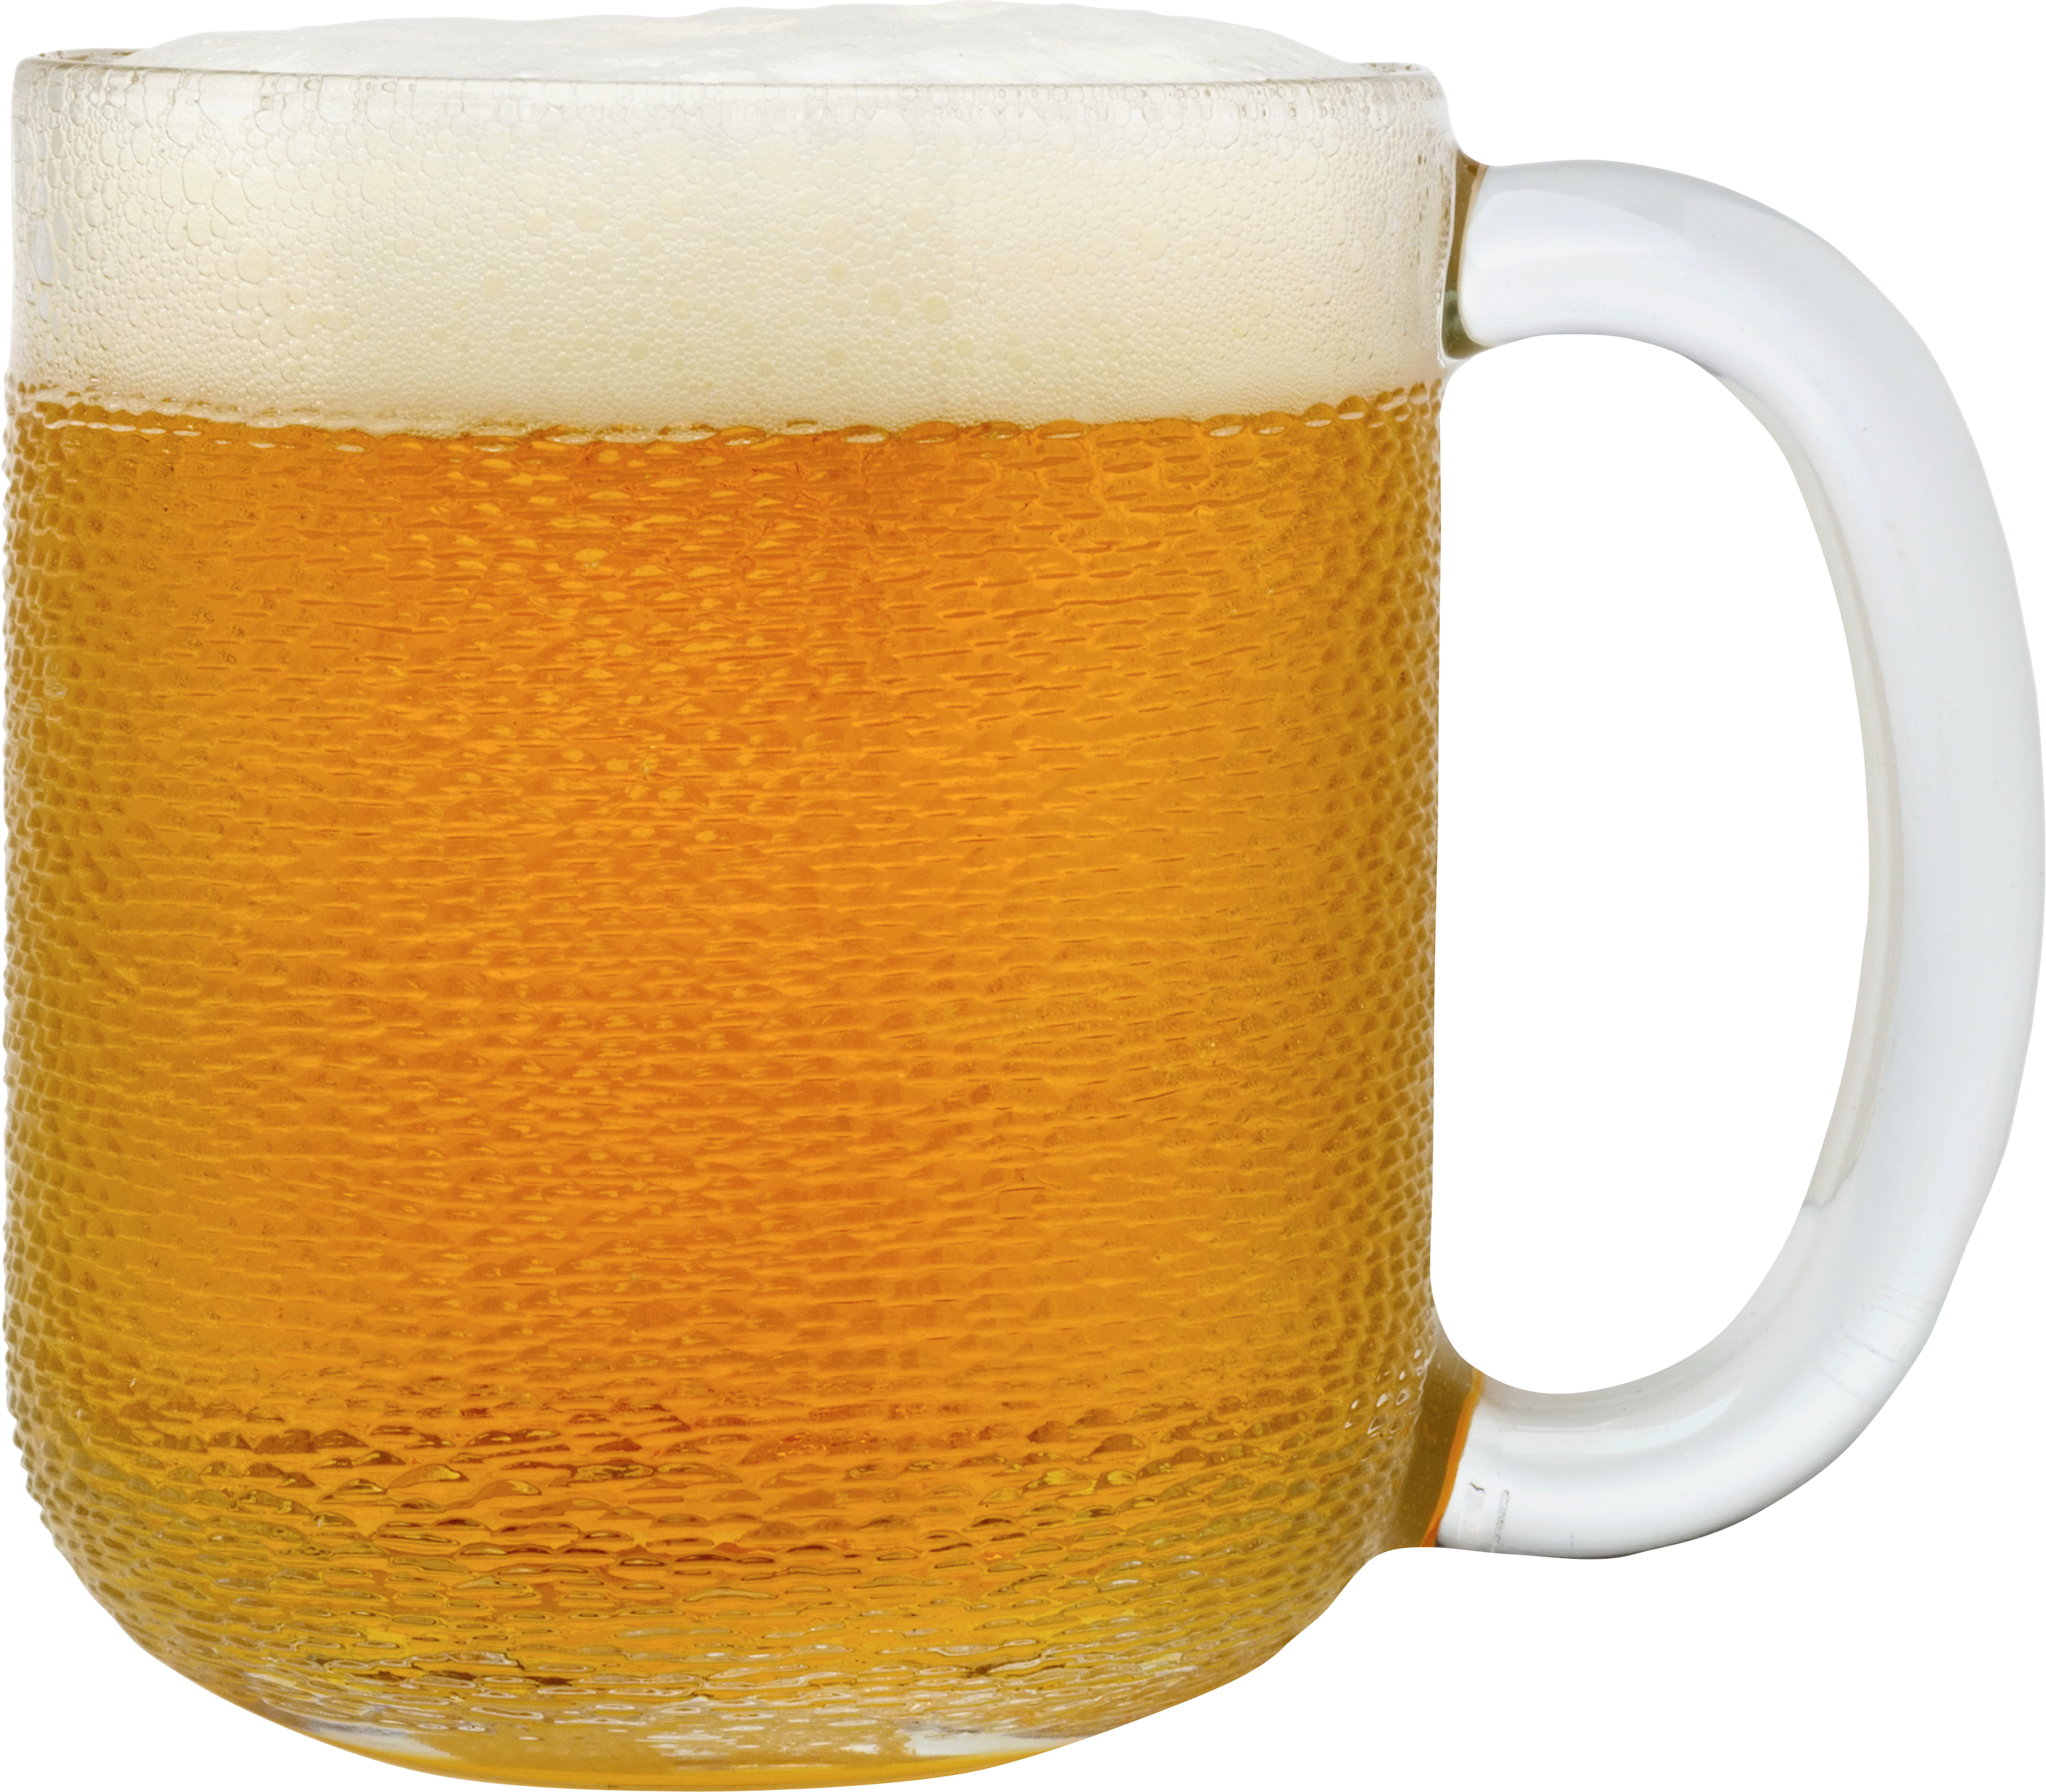 Png images free pictures. Transparent beer jug black and white